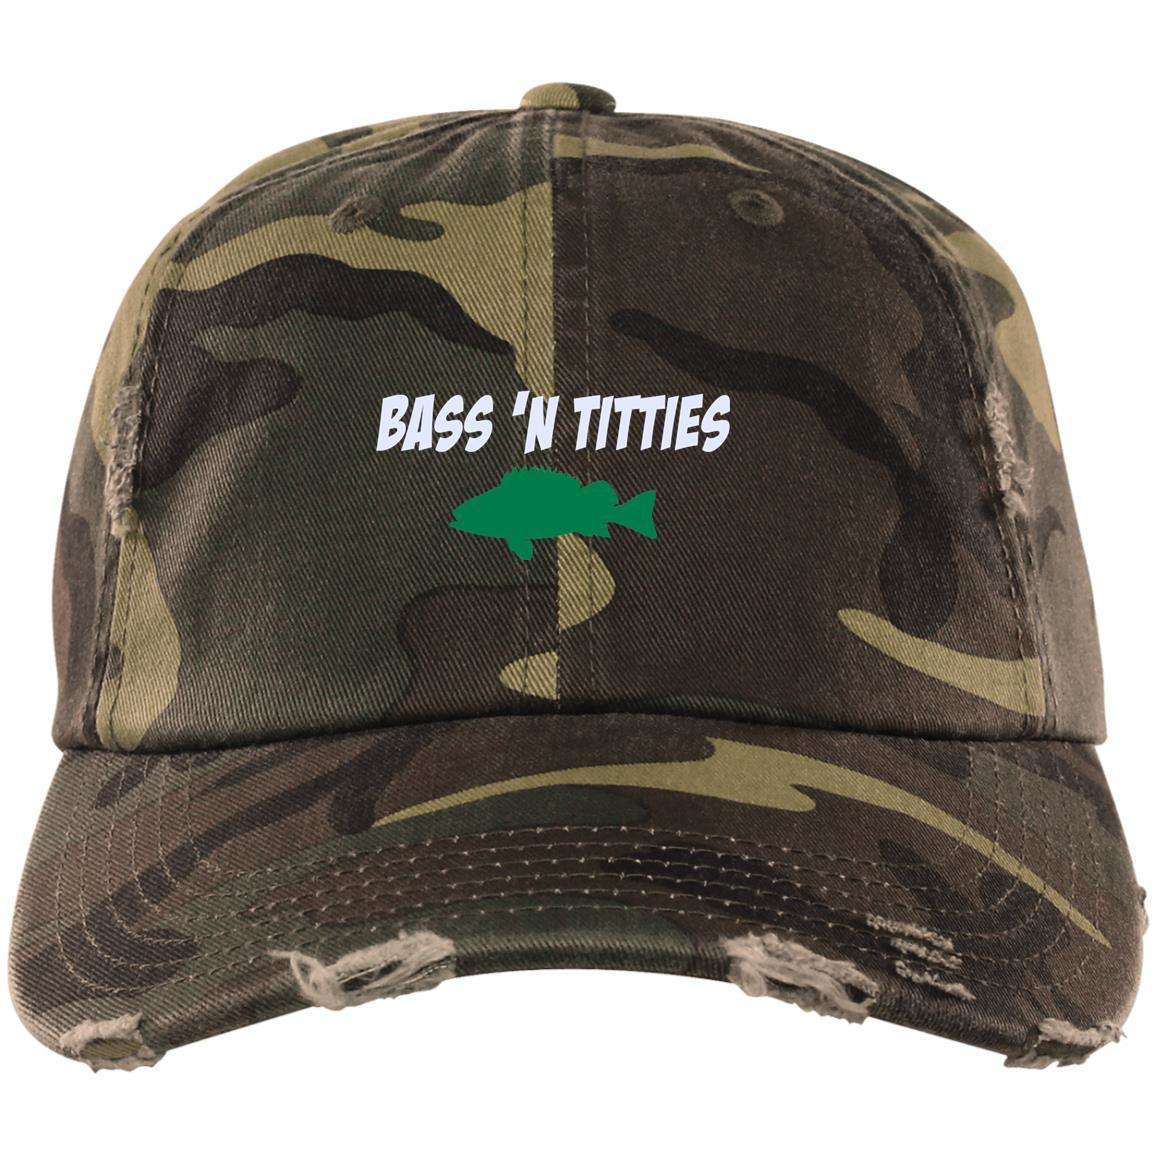 Bass N Titties Distressed Dad Cap